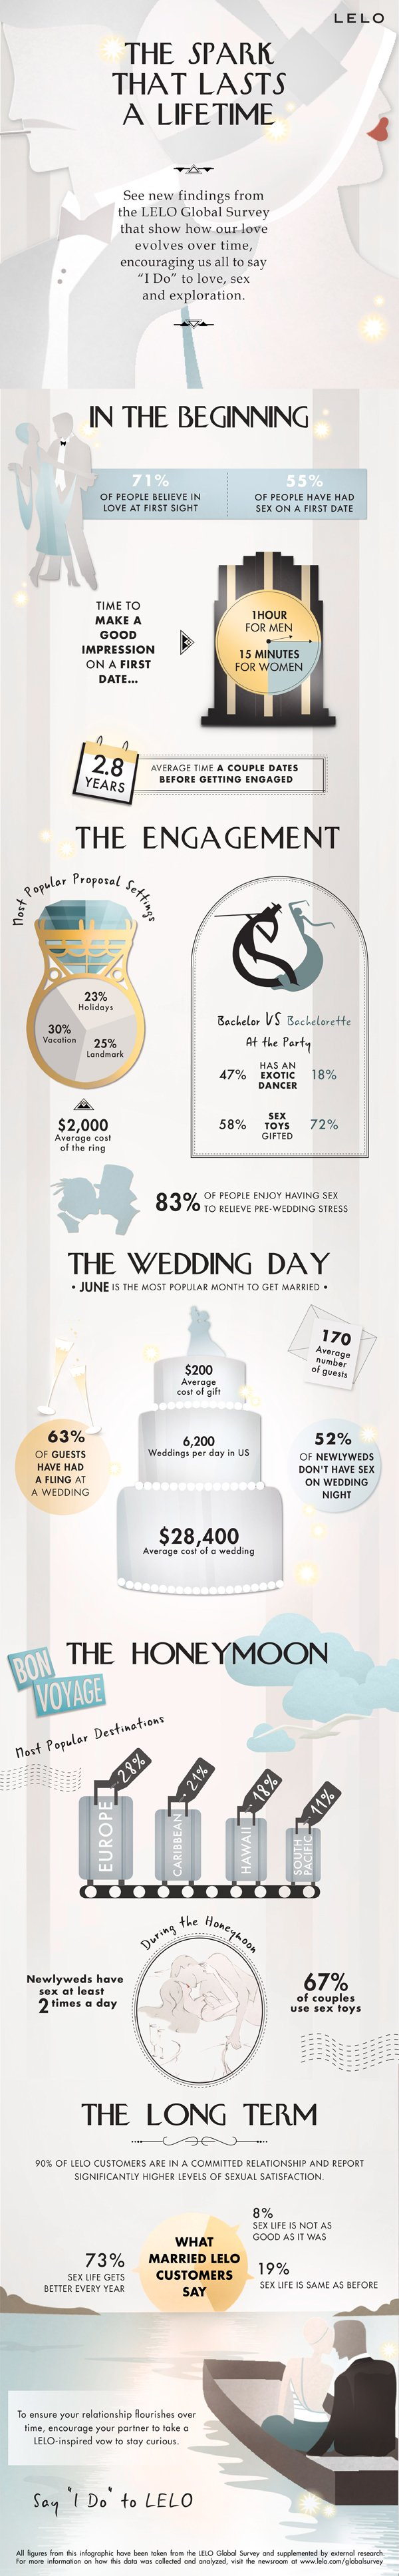 LELO-infographic-marriage-wedding-statistics-Bridal-Set